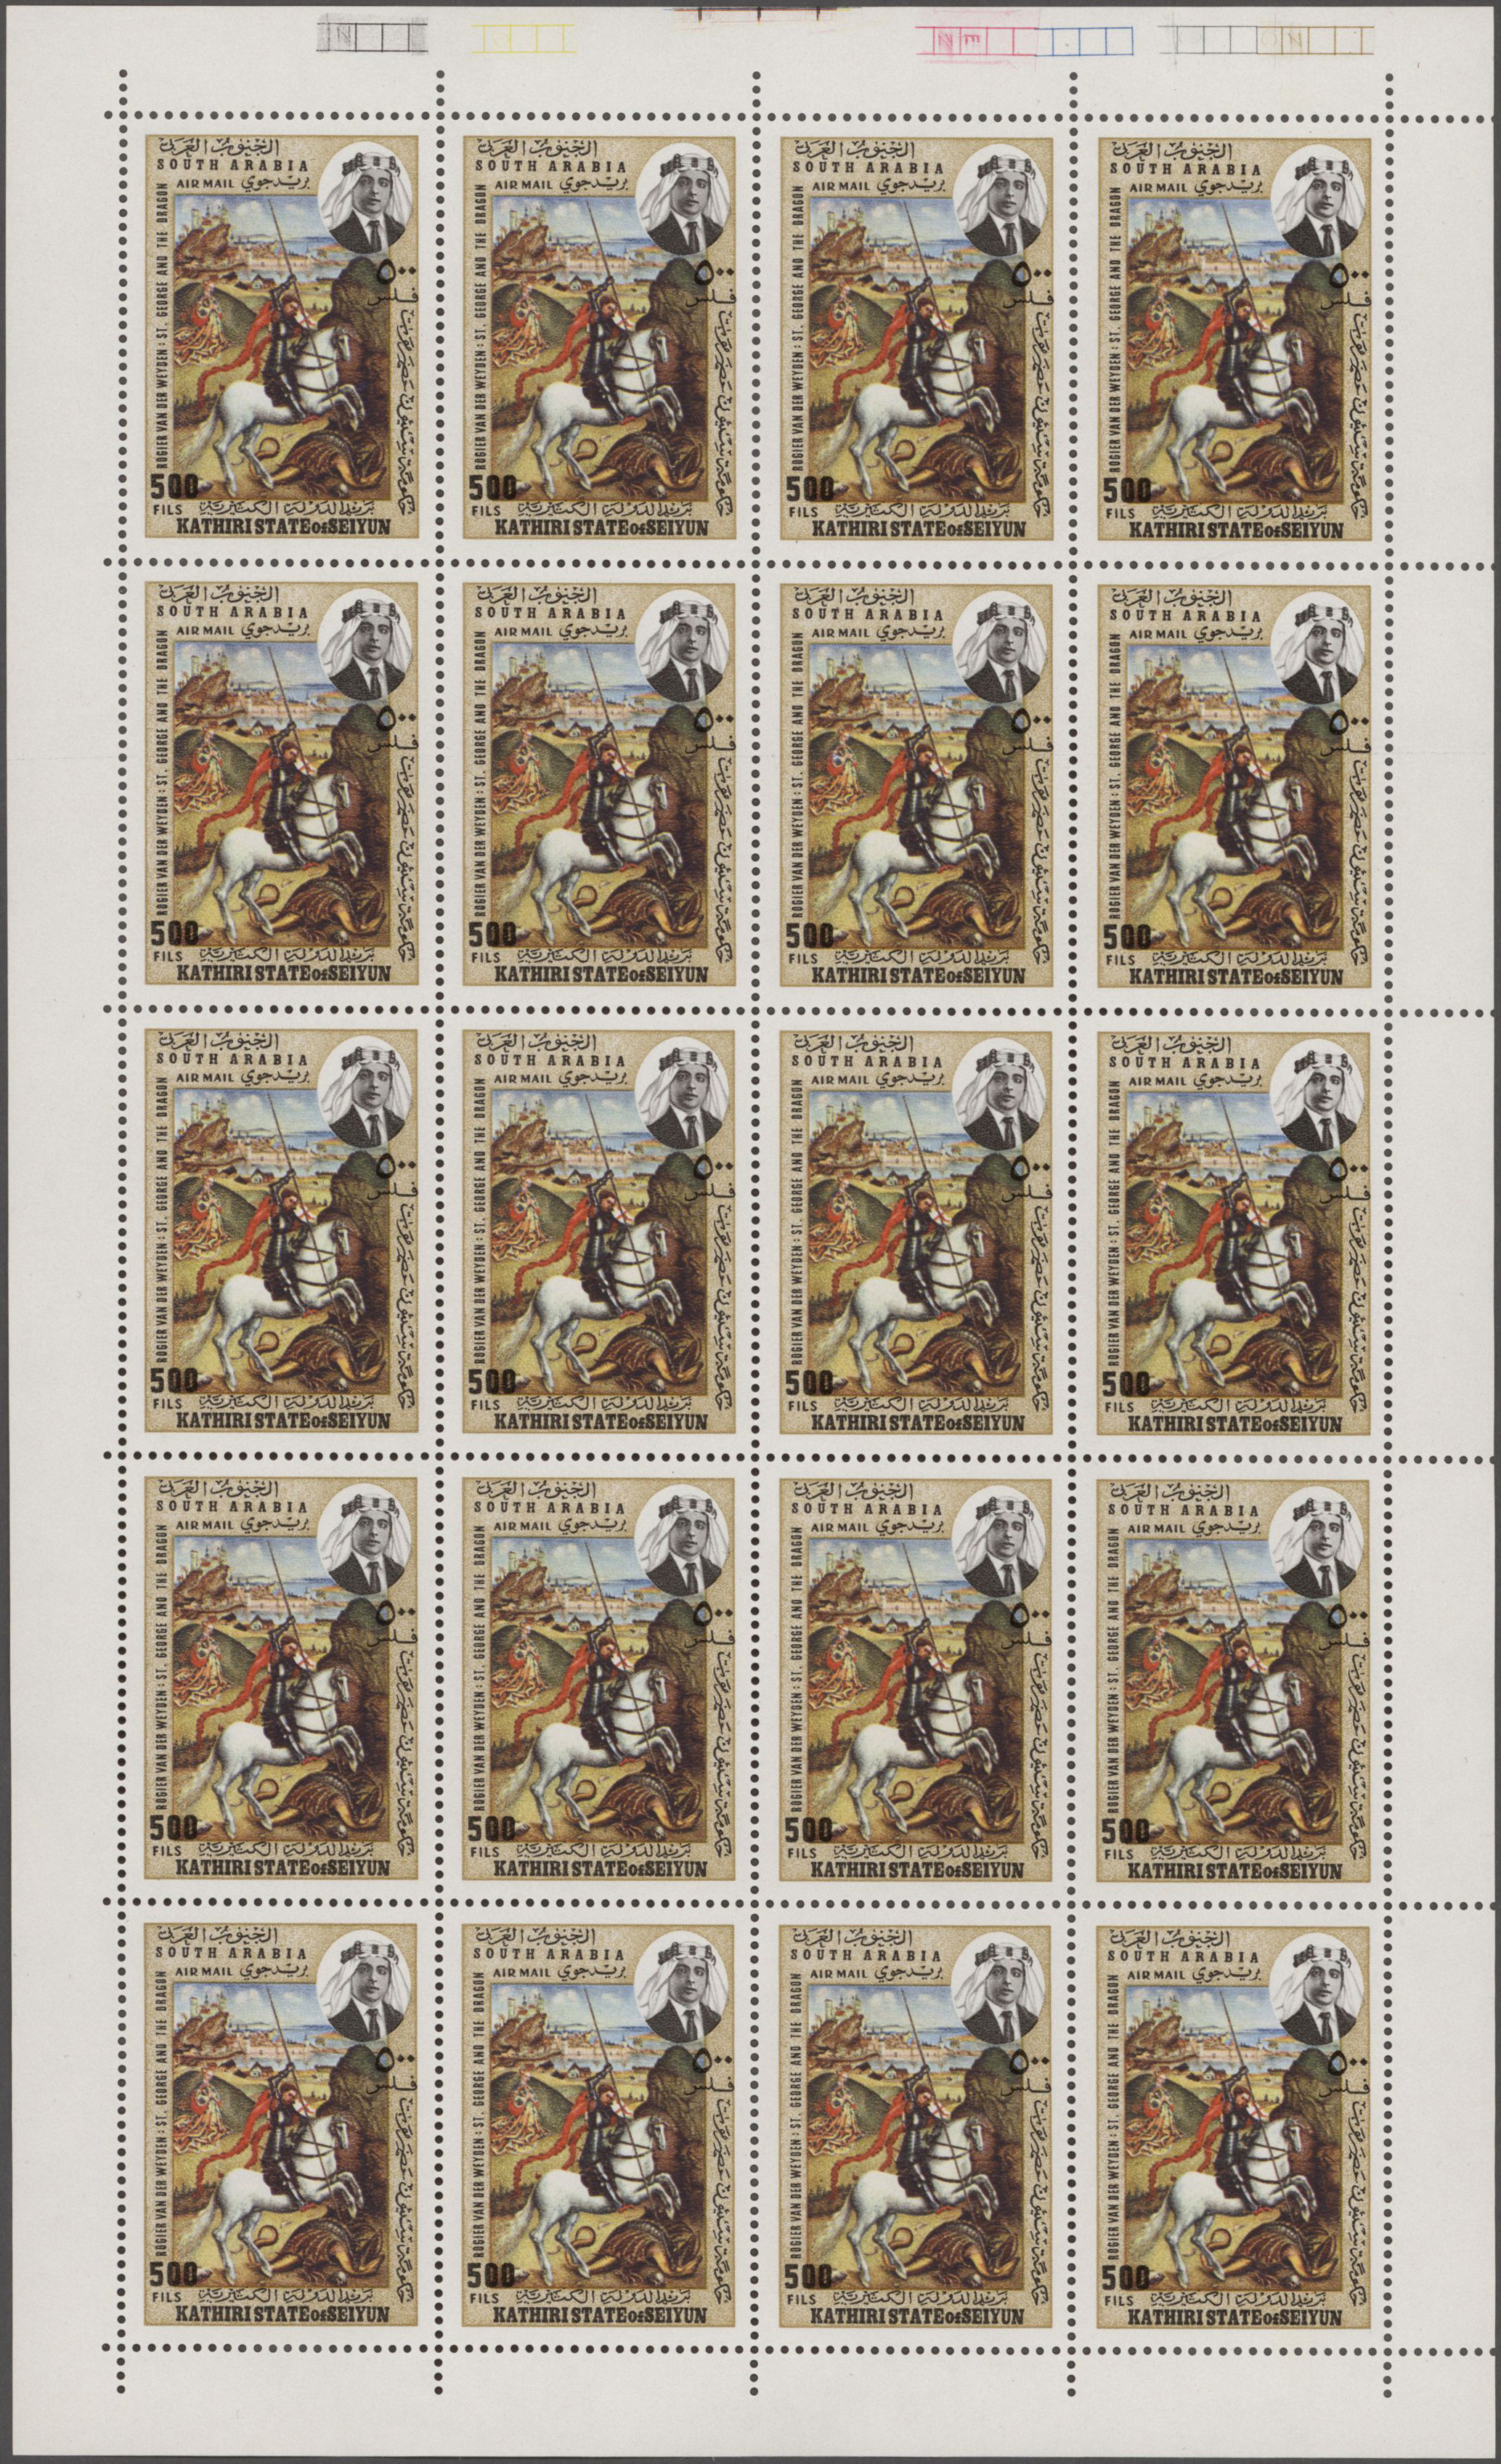 Lot 20013 - Aden - Kathiri State of Seiyun  -  Auktionshaus Christoph Gärtner GmbH & Co. KG Sale #46 Collections Worldwide